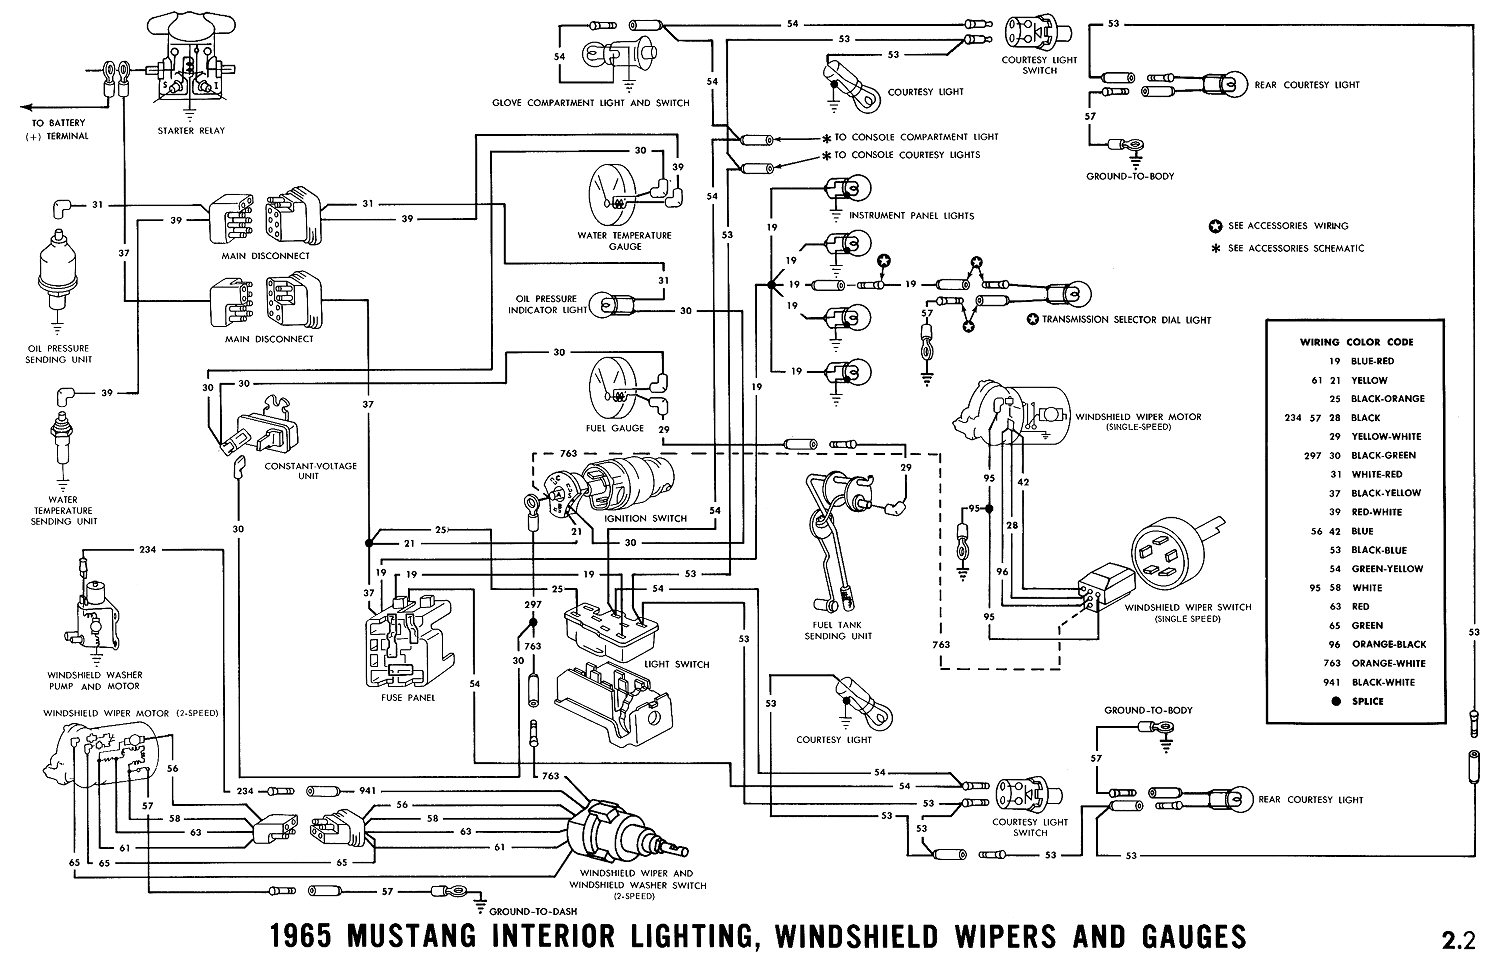 2013 Ford Mustang Diagram Schematic Wiring Diagrams Altima Fuse Stereo 1993